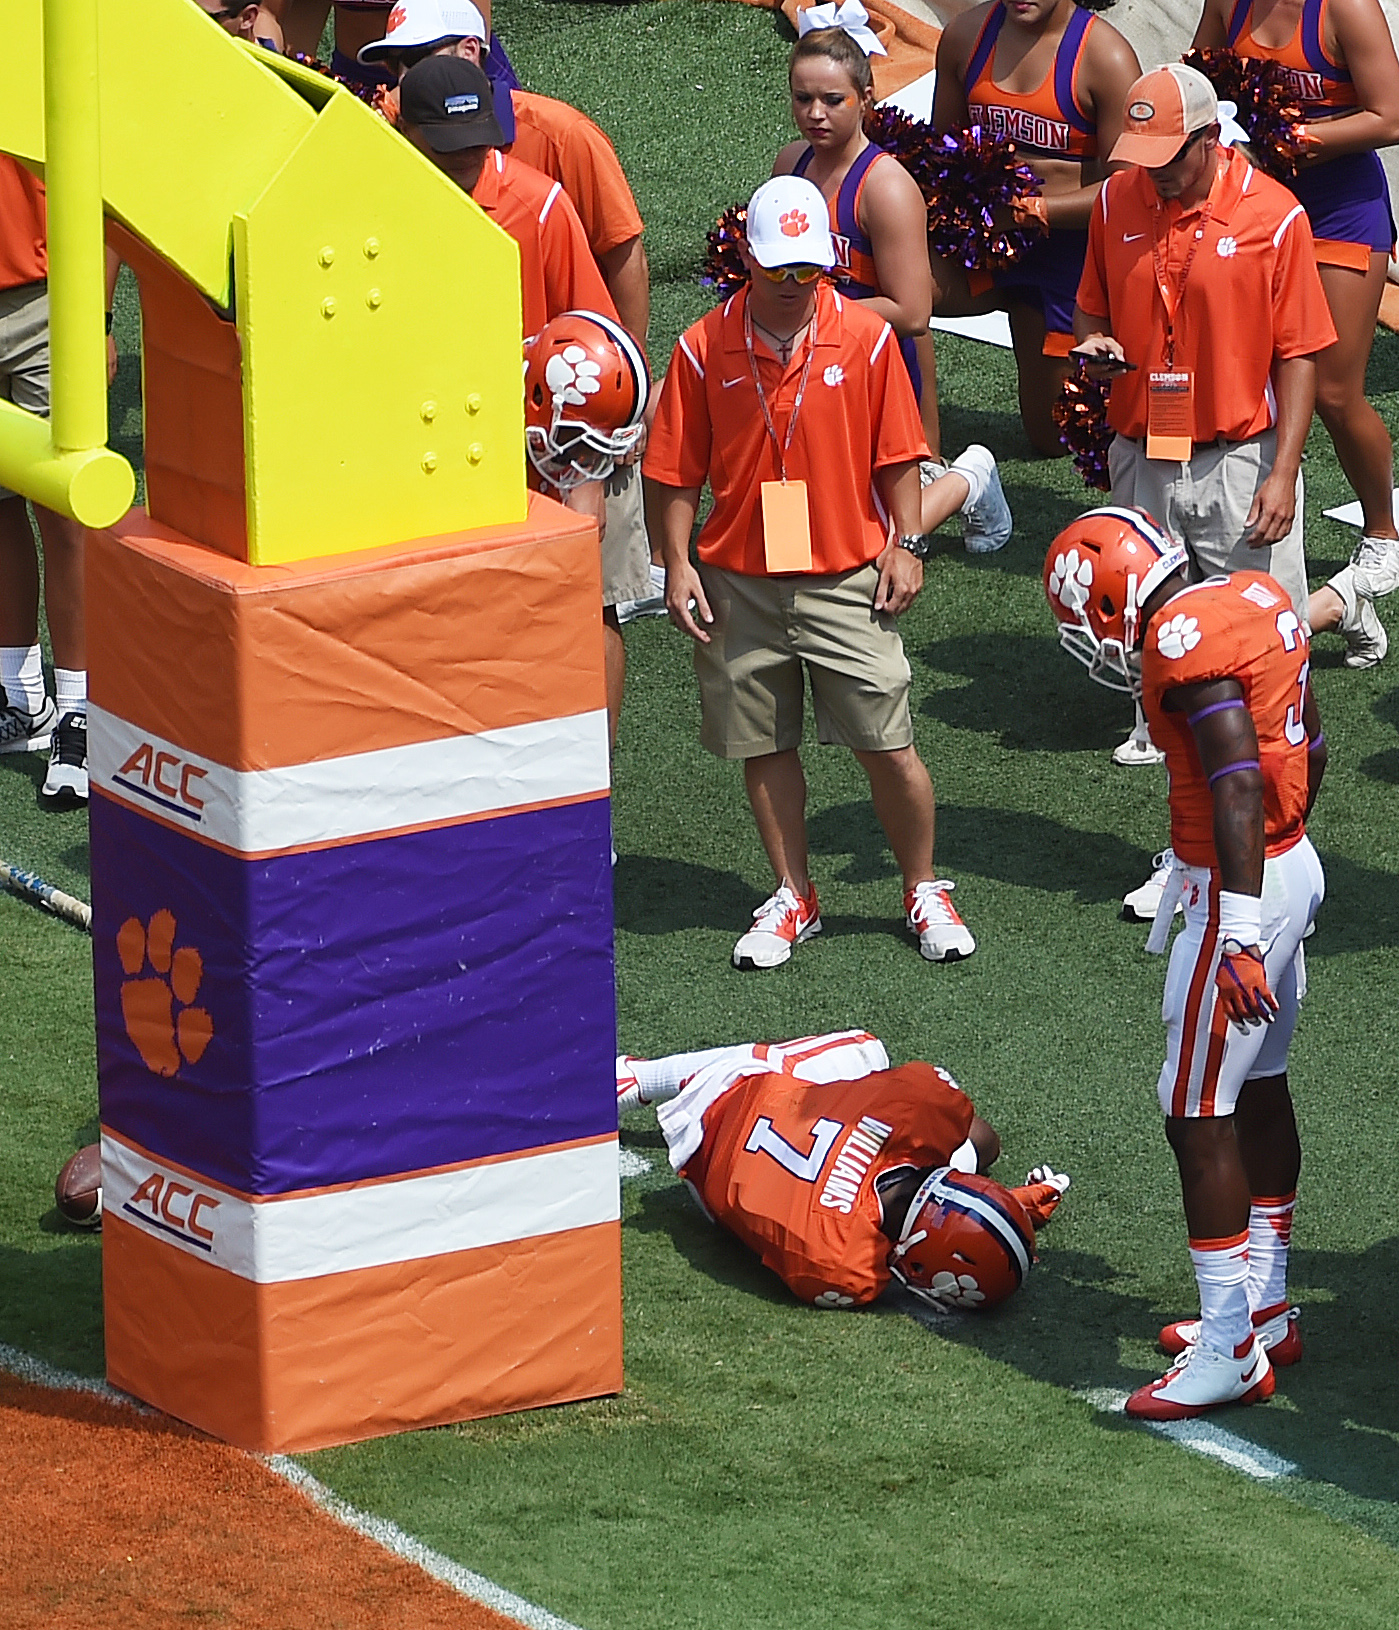 Clemson wide receiver Mike Williams lies on the field after he collided with the goal post while trying to make a catch during the first half of an NCAA college football game against Wofford on Saturday, Sept. 5, 2015, in Clemson, S.C.  Williams was injur